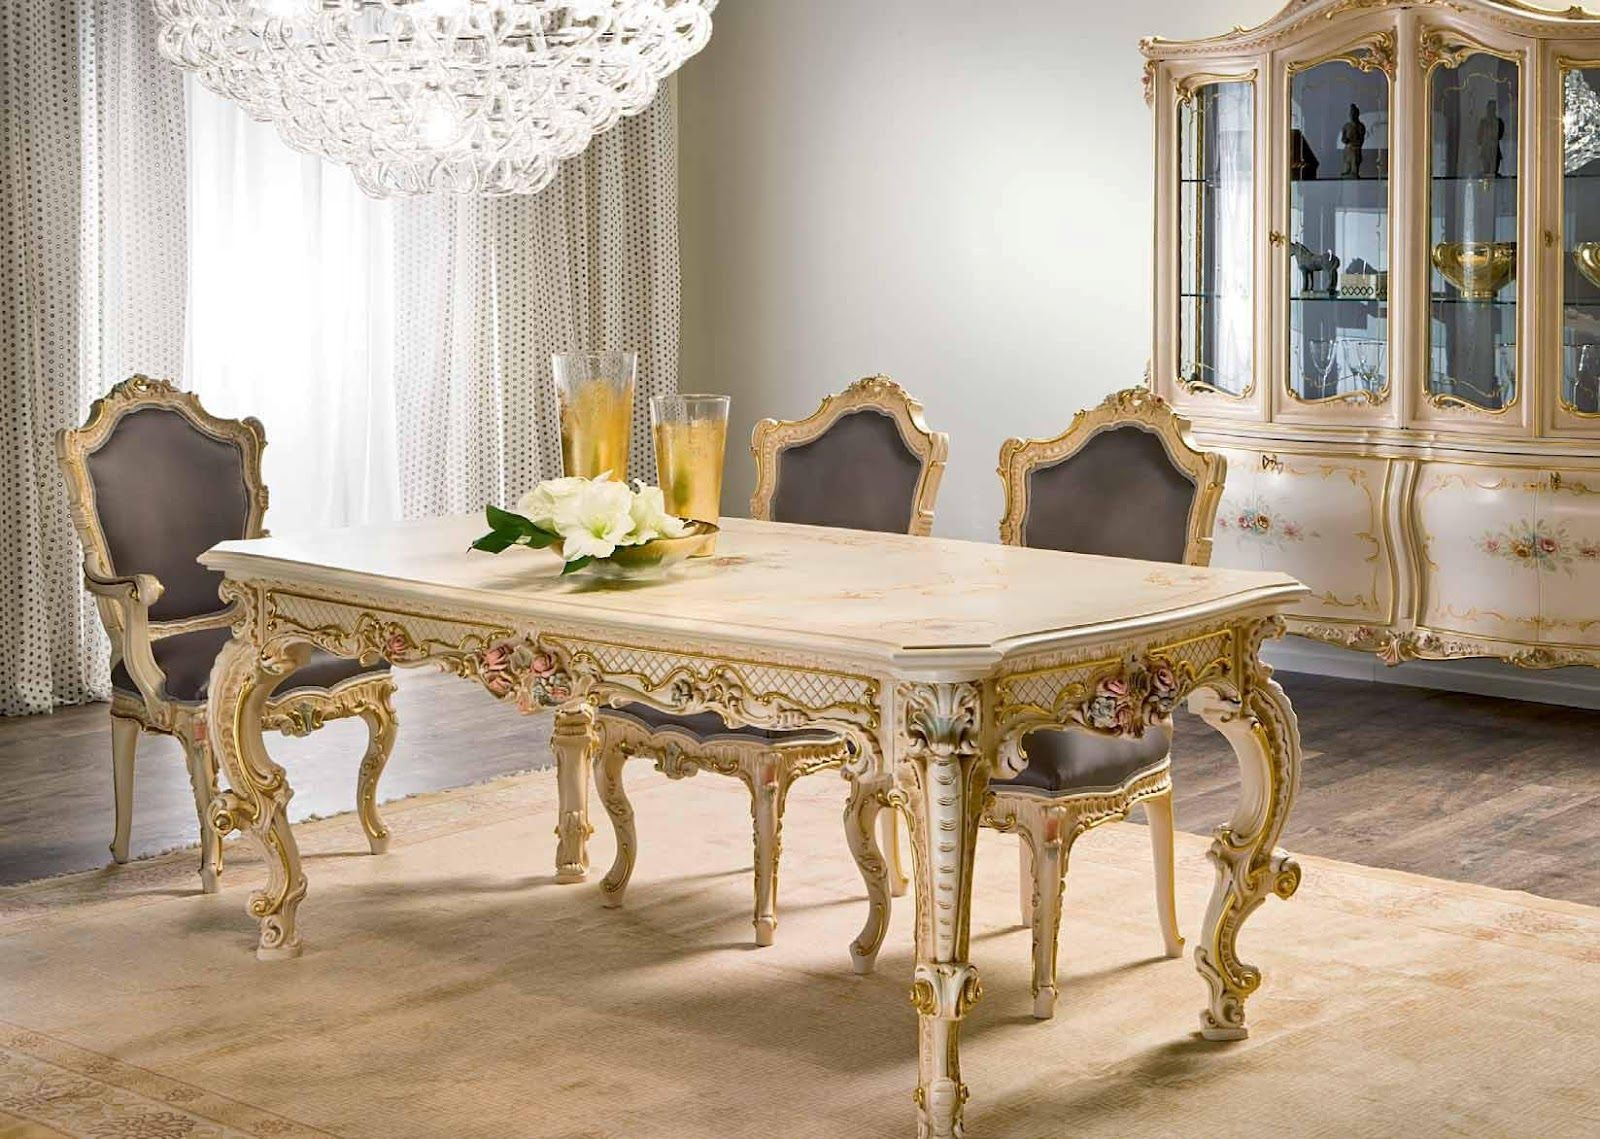 French Style Furniture Classical Collection 画像あり